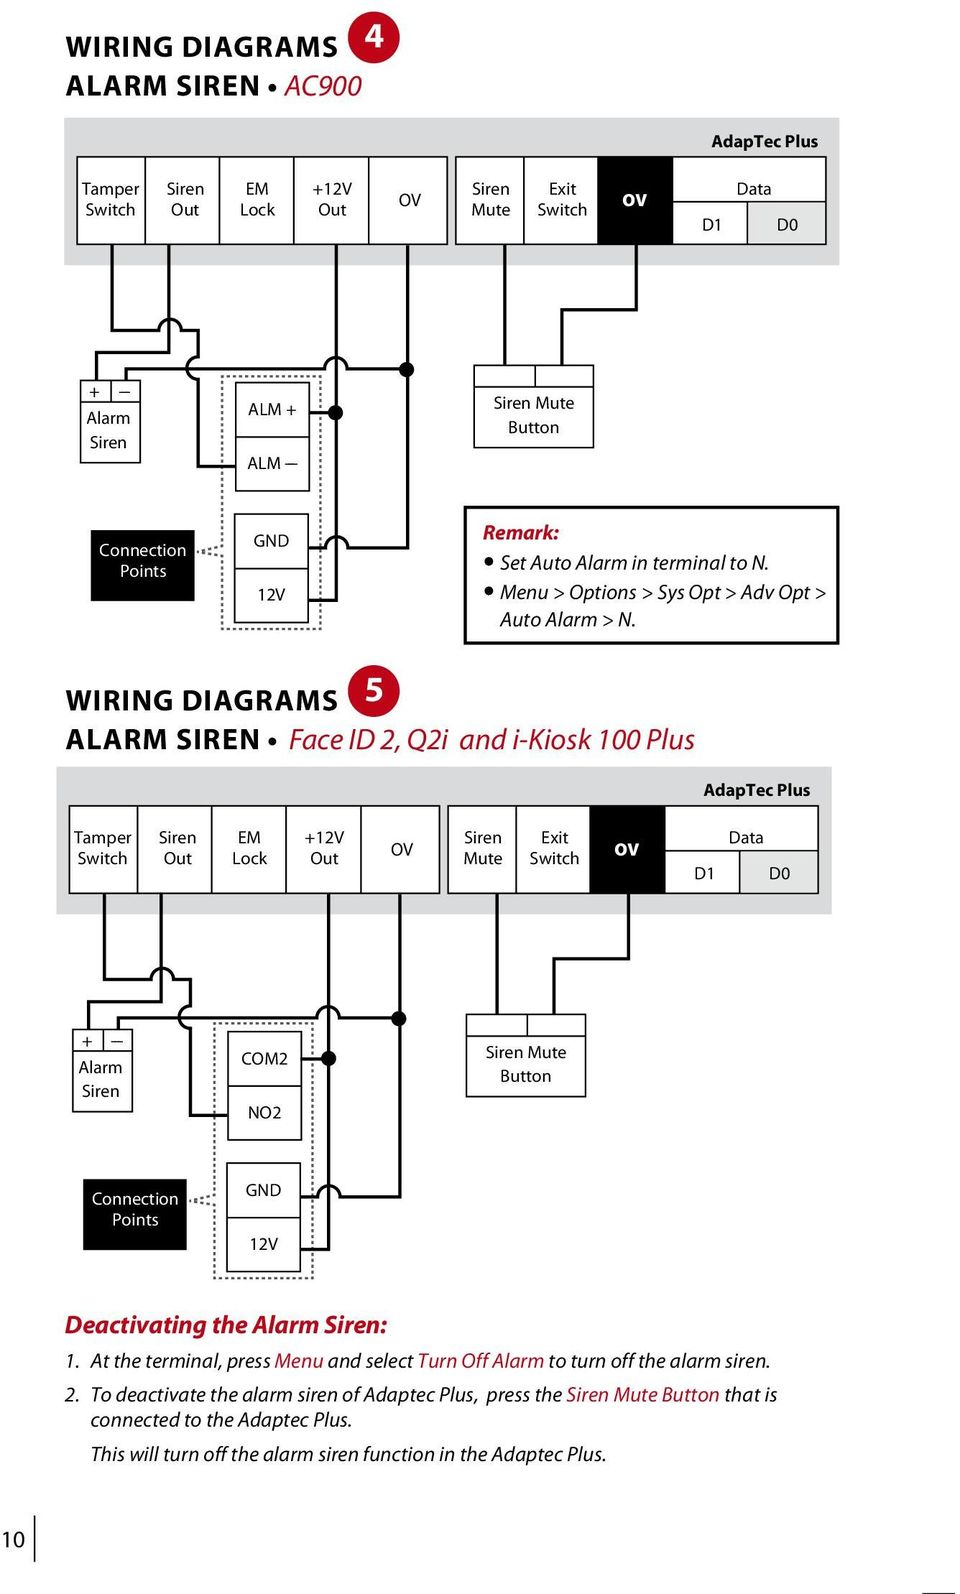 WIRING DIAGRAMS 5 Alarm siren Face ID, Qi and i-kiosk 00 Plus AdapTec Plus Tamper Siren EM +V Siren Exit Data Switch Out Lock Out Mute Switch D D0 + --- Alarm Siren COM NO Siren Mute Button